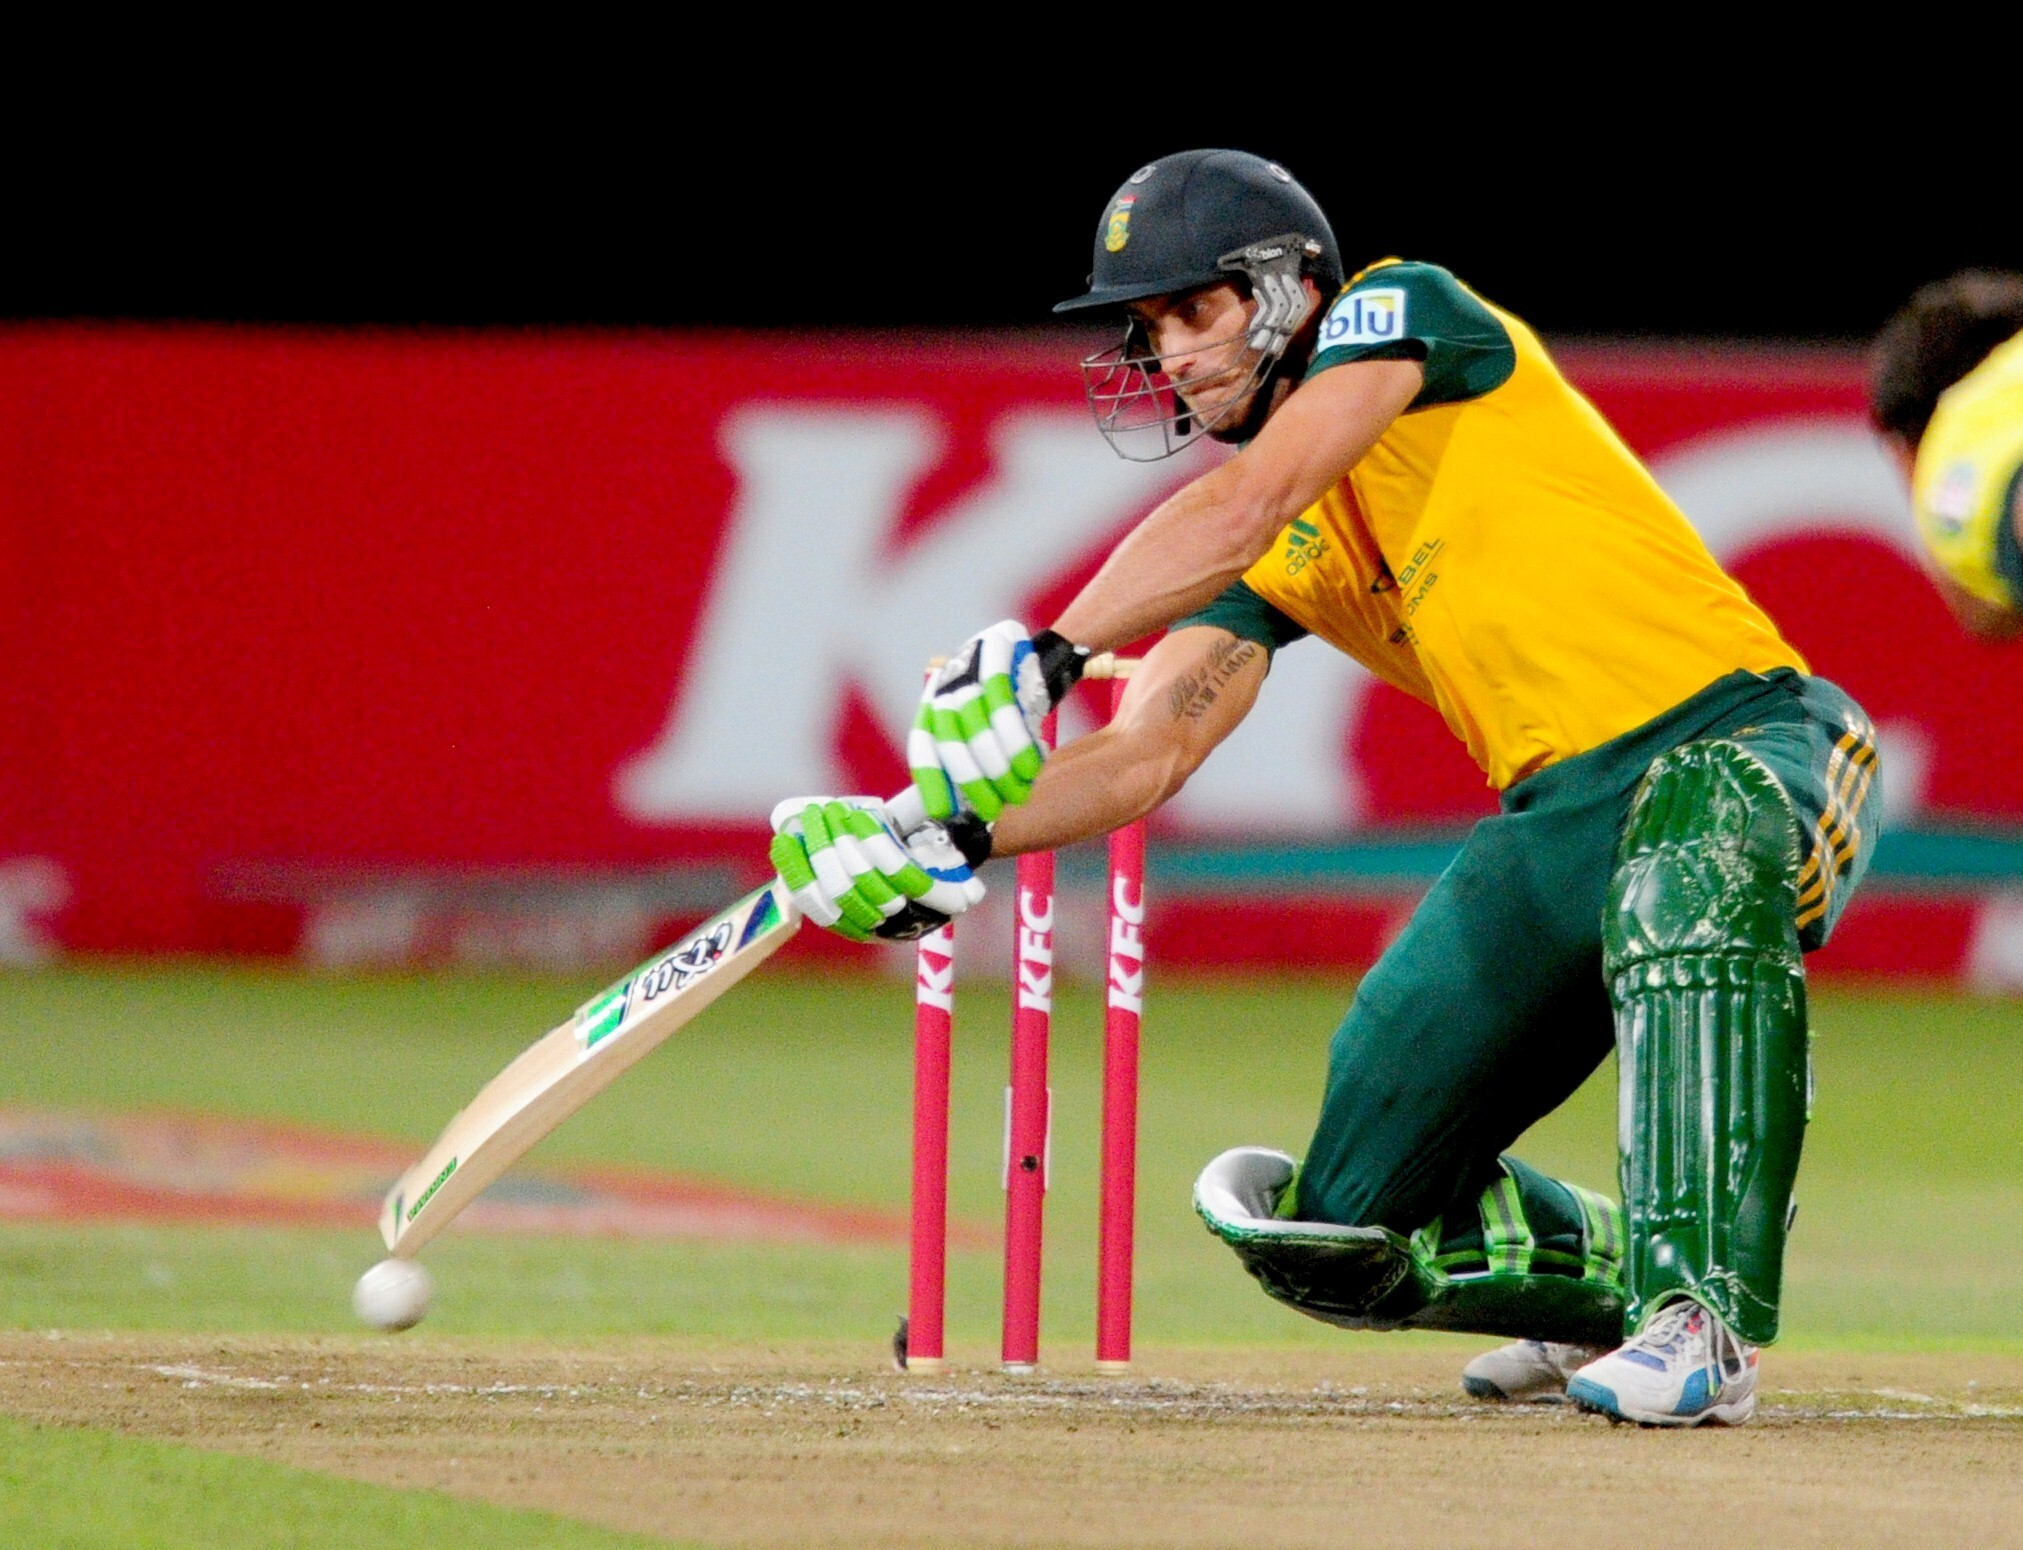 Worldcup 2015 South African Cricketer Faf Du Plessis On Ground